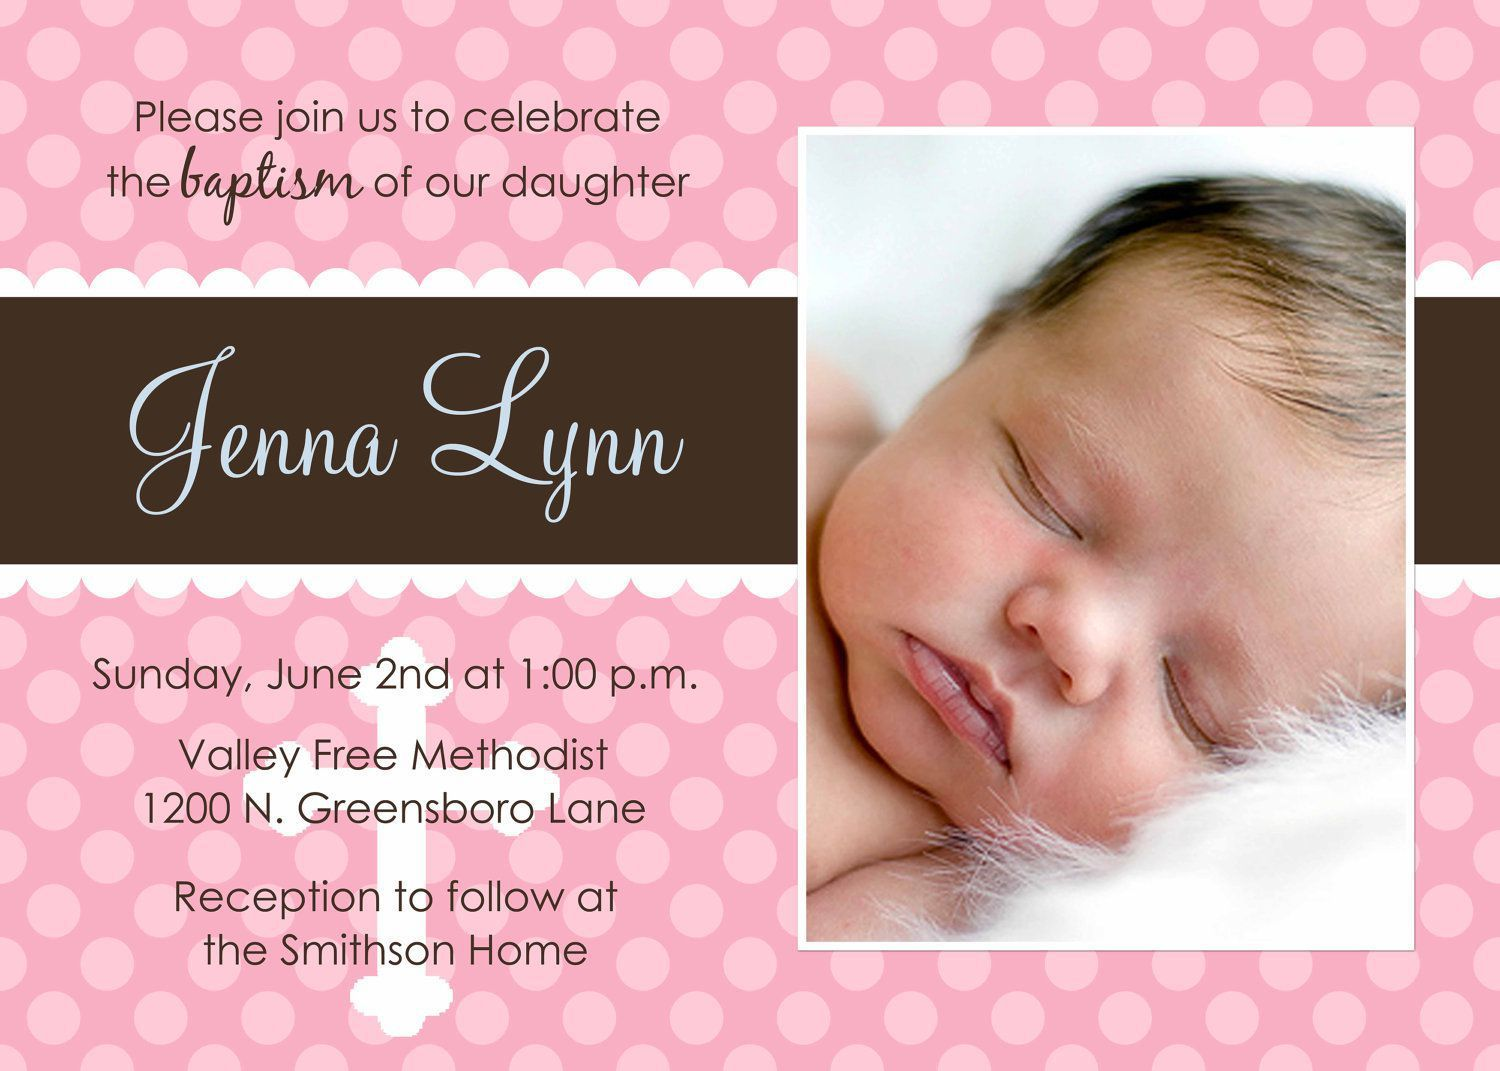 You are invited to attend the Christing of my daughter BEEMNET ...